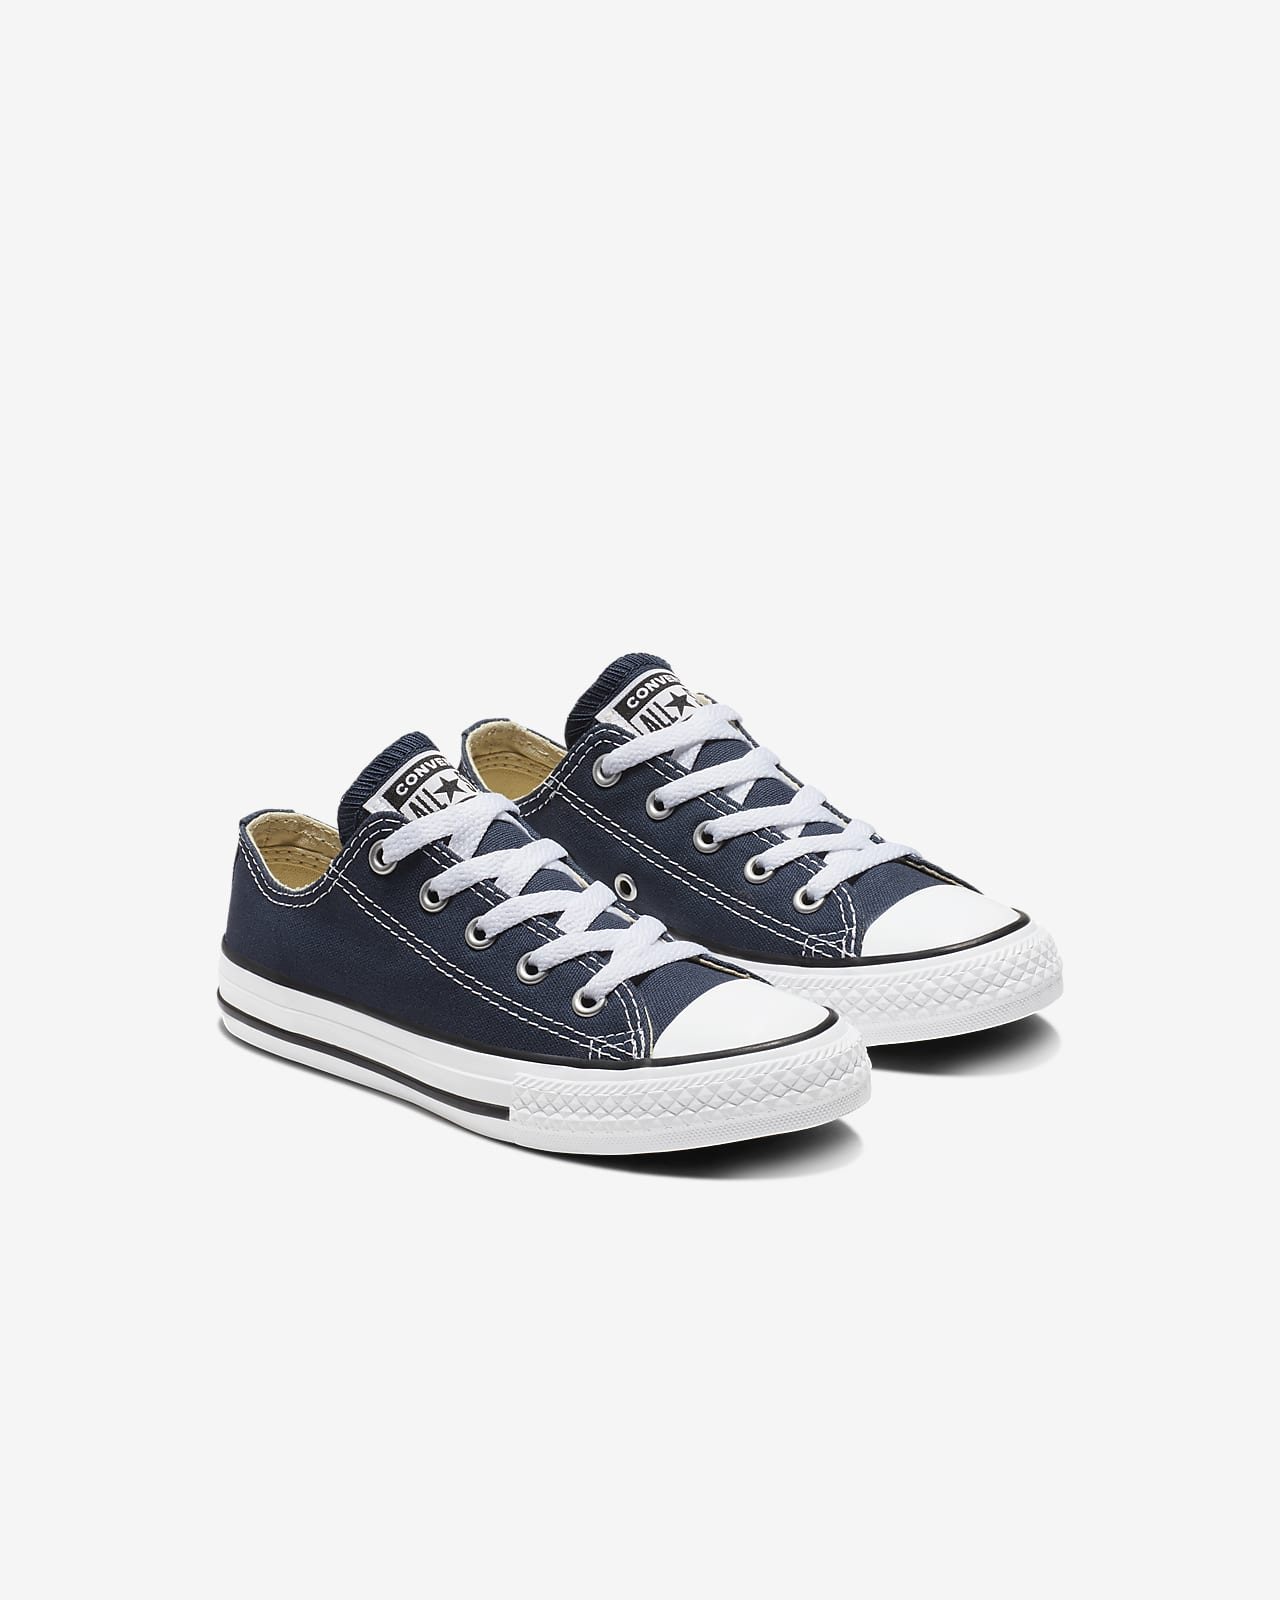 Converse Chuck Taylor All Star Lo Top Little Kids Navy